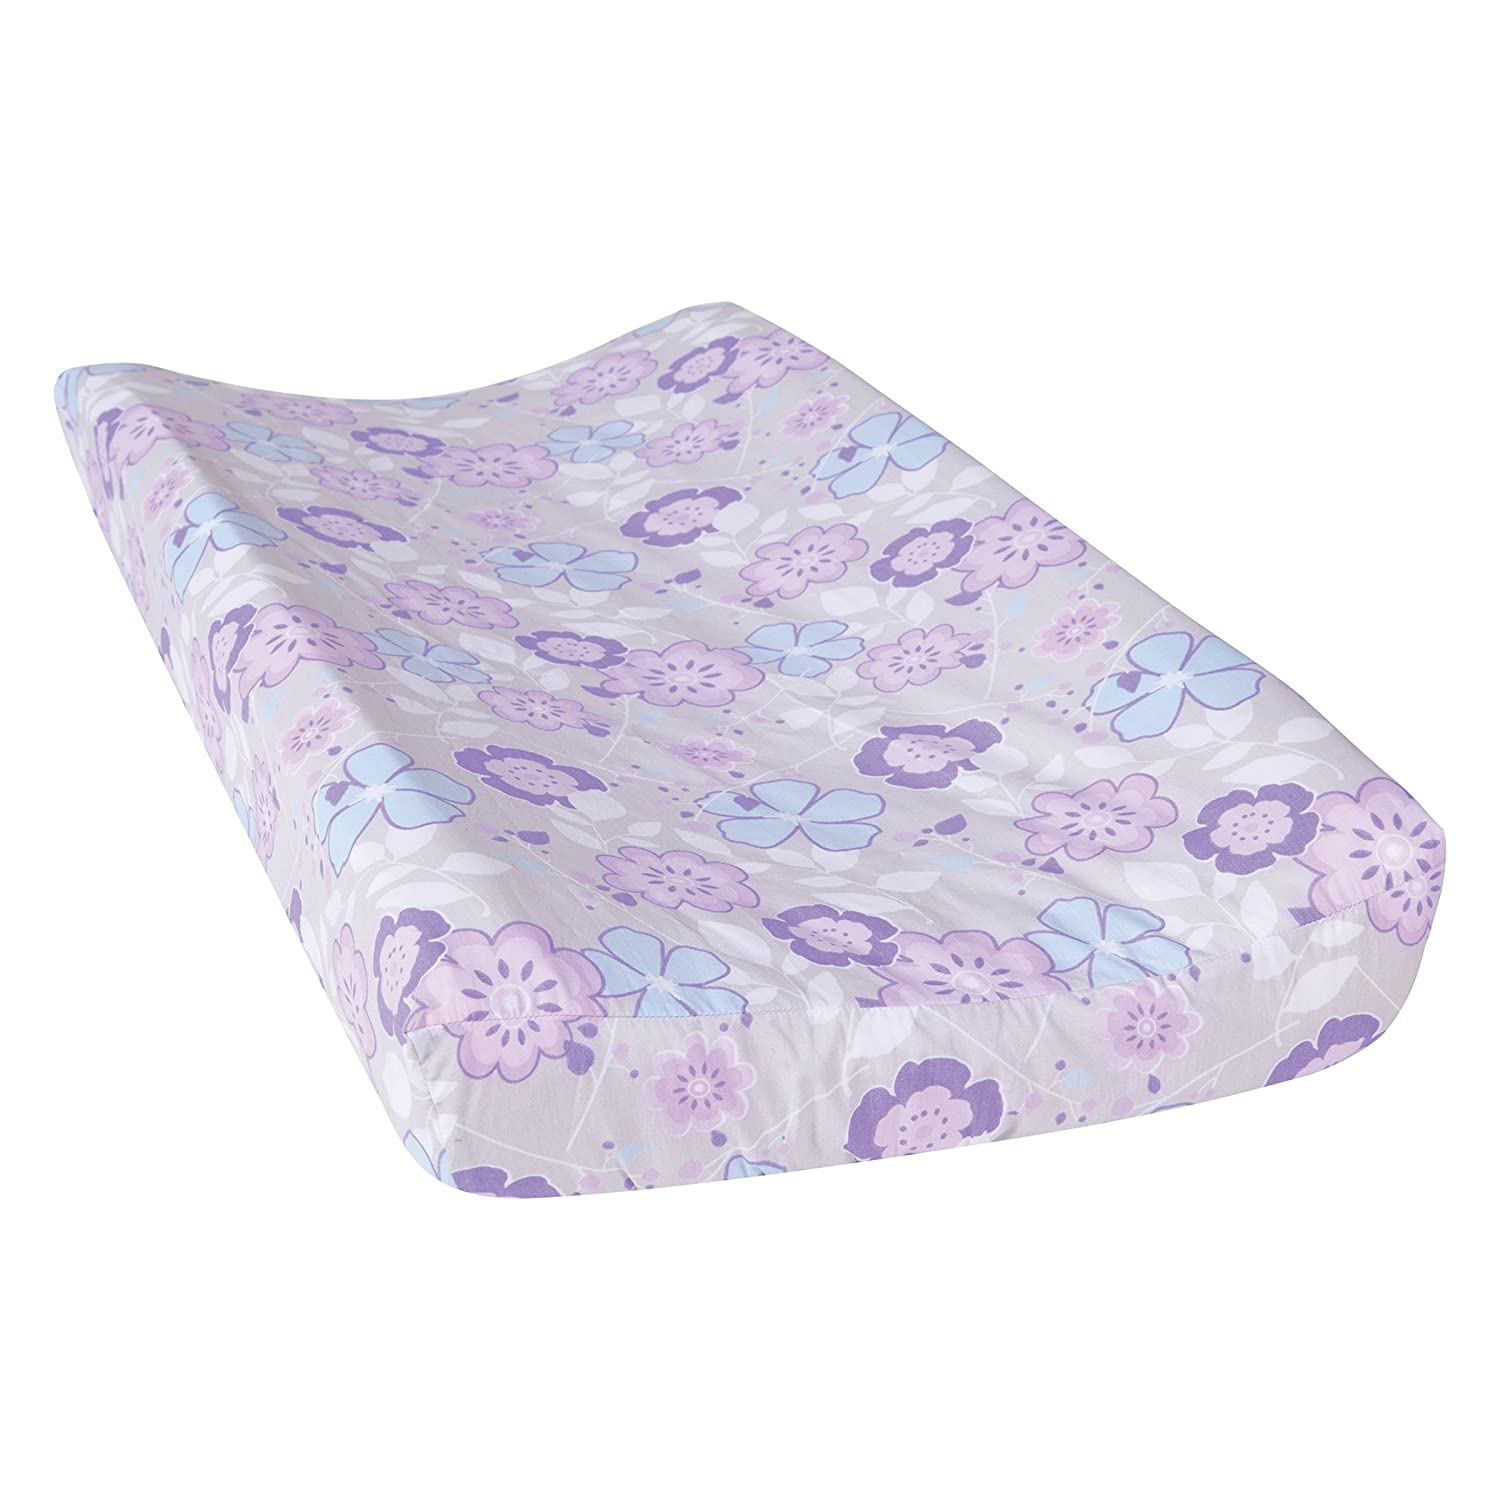 Trend Lab Grace Floral Changing Pad Cover, Purple, Blue, Gray and White 100241